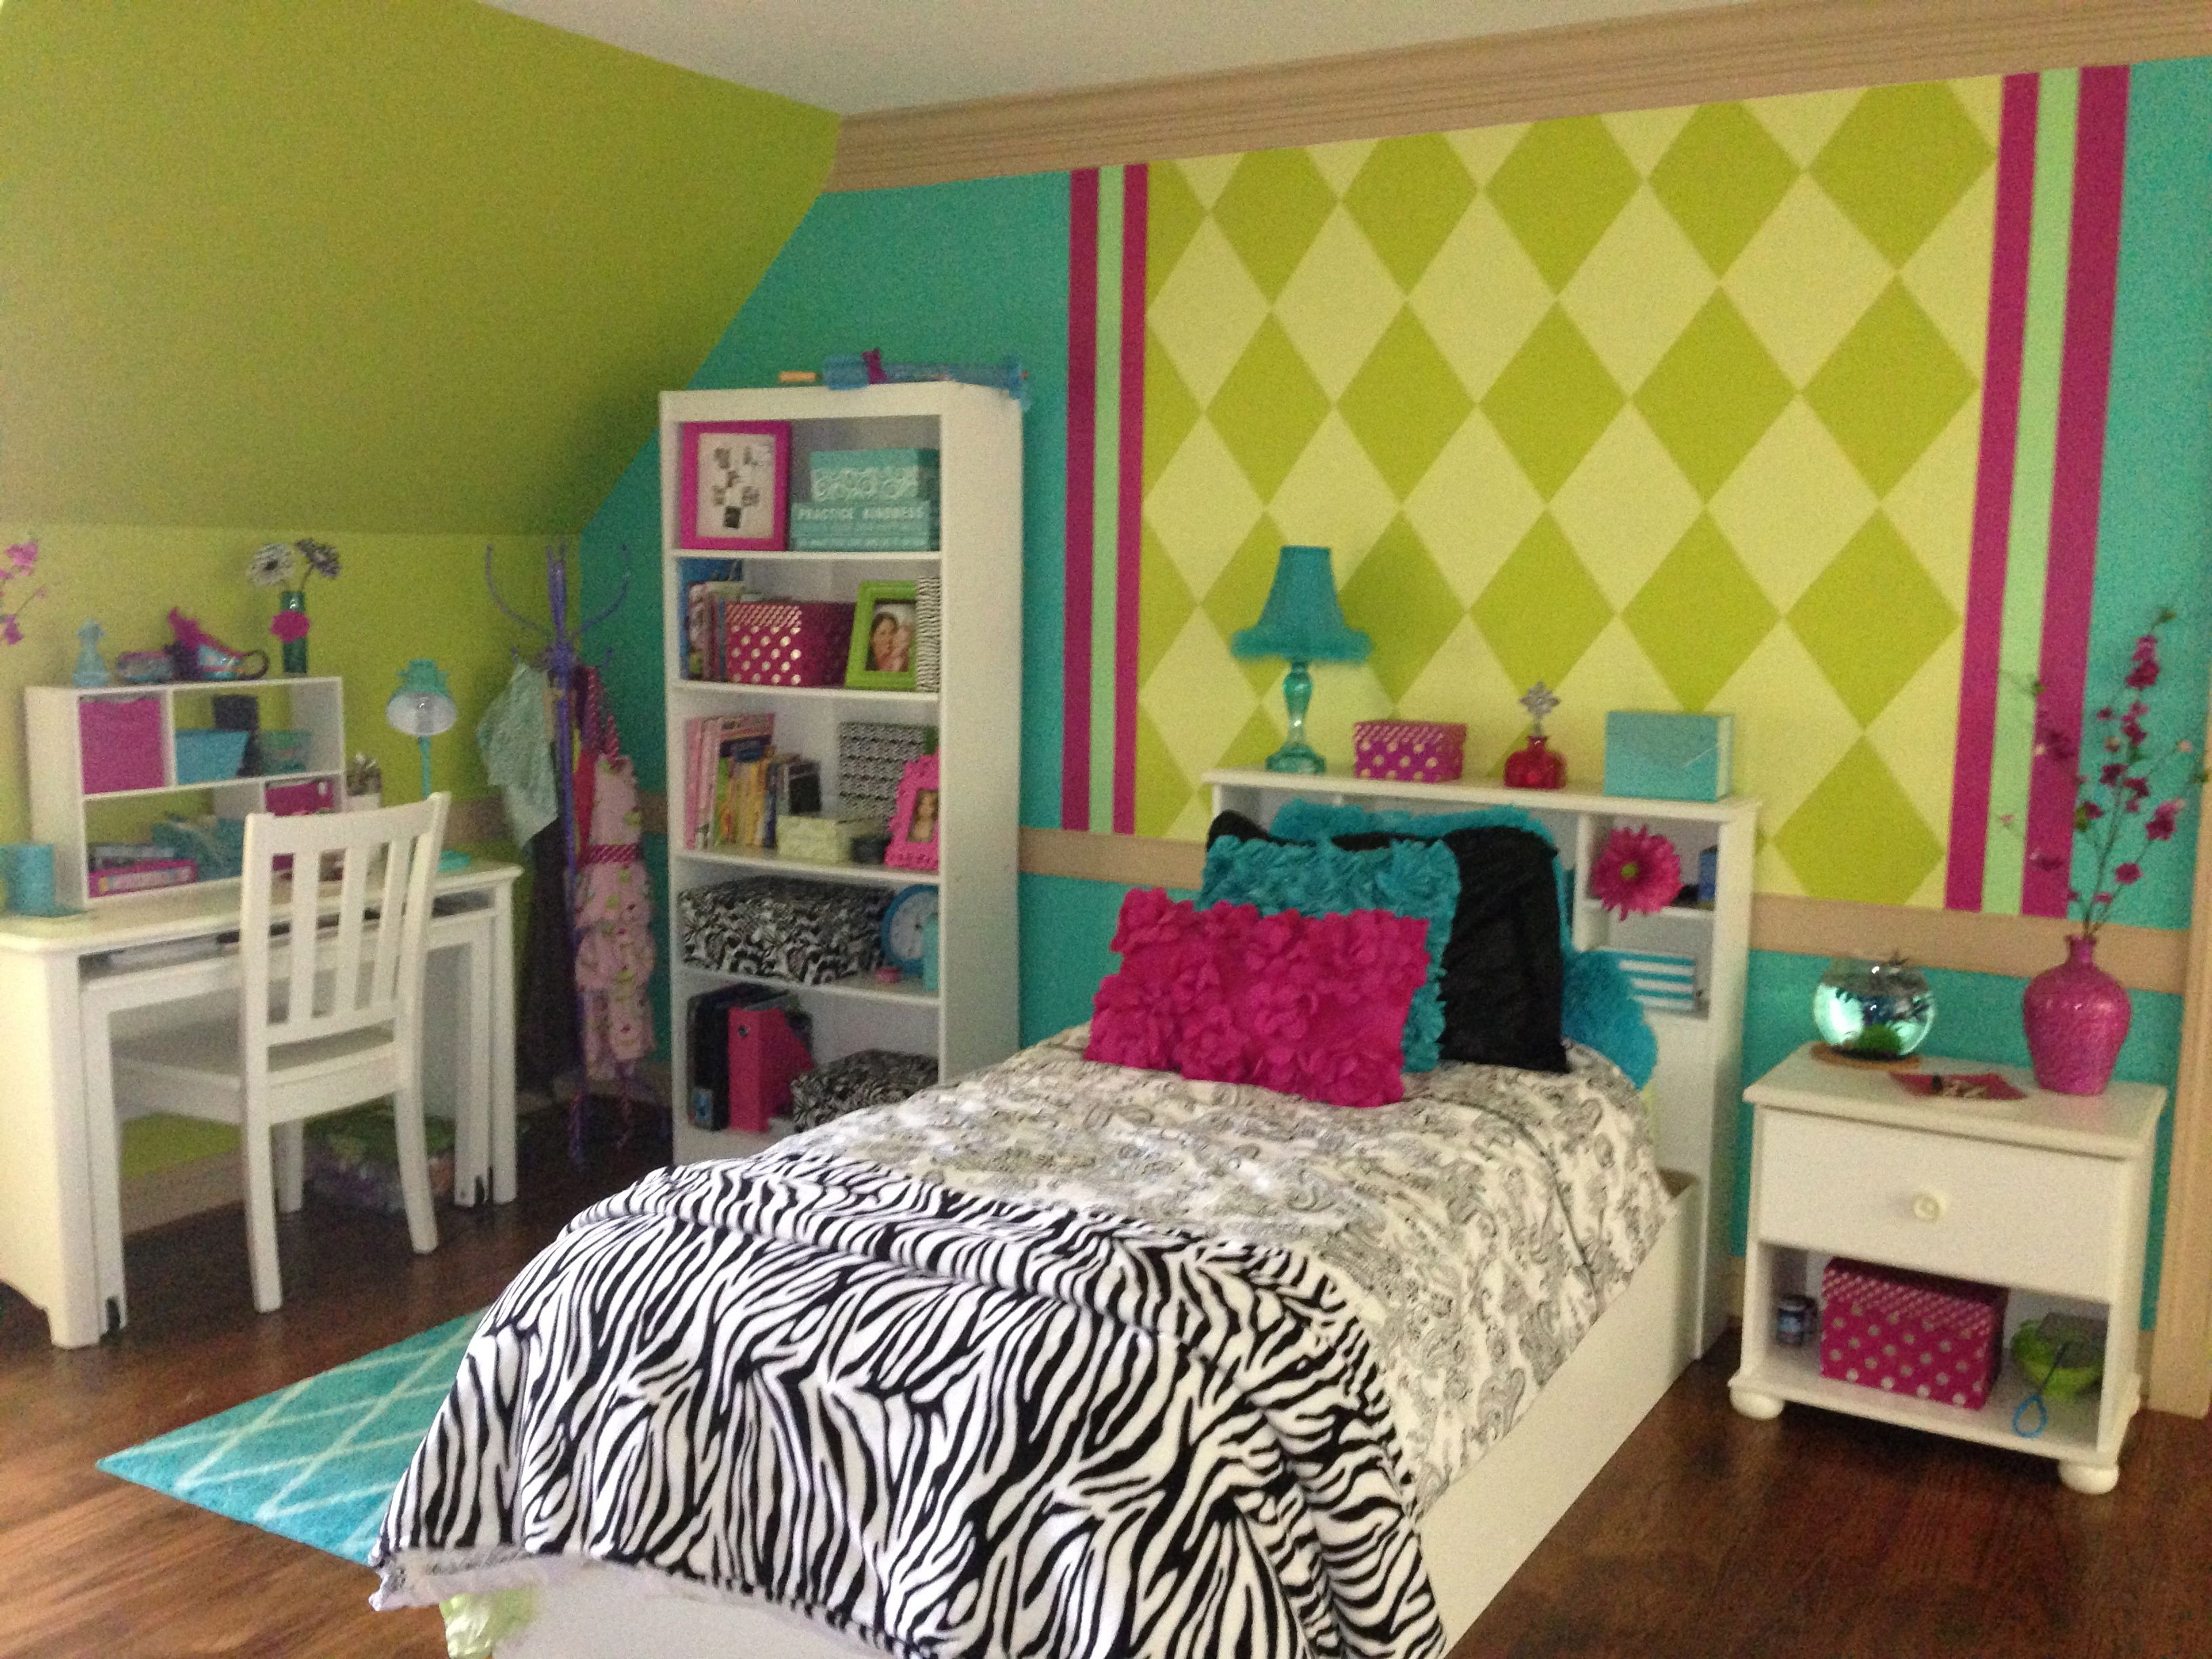 15 best Little Girls' Bedroom Paint images on Pinterest | Girls ...